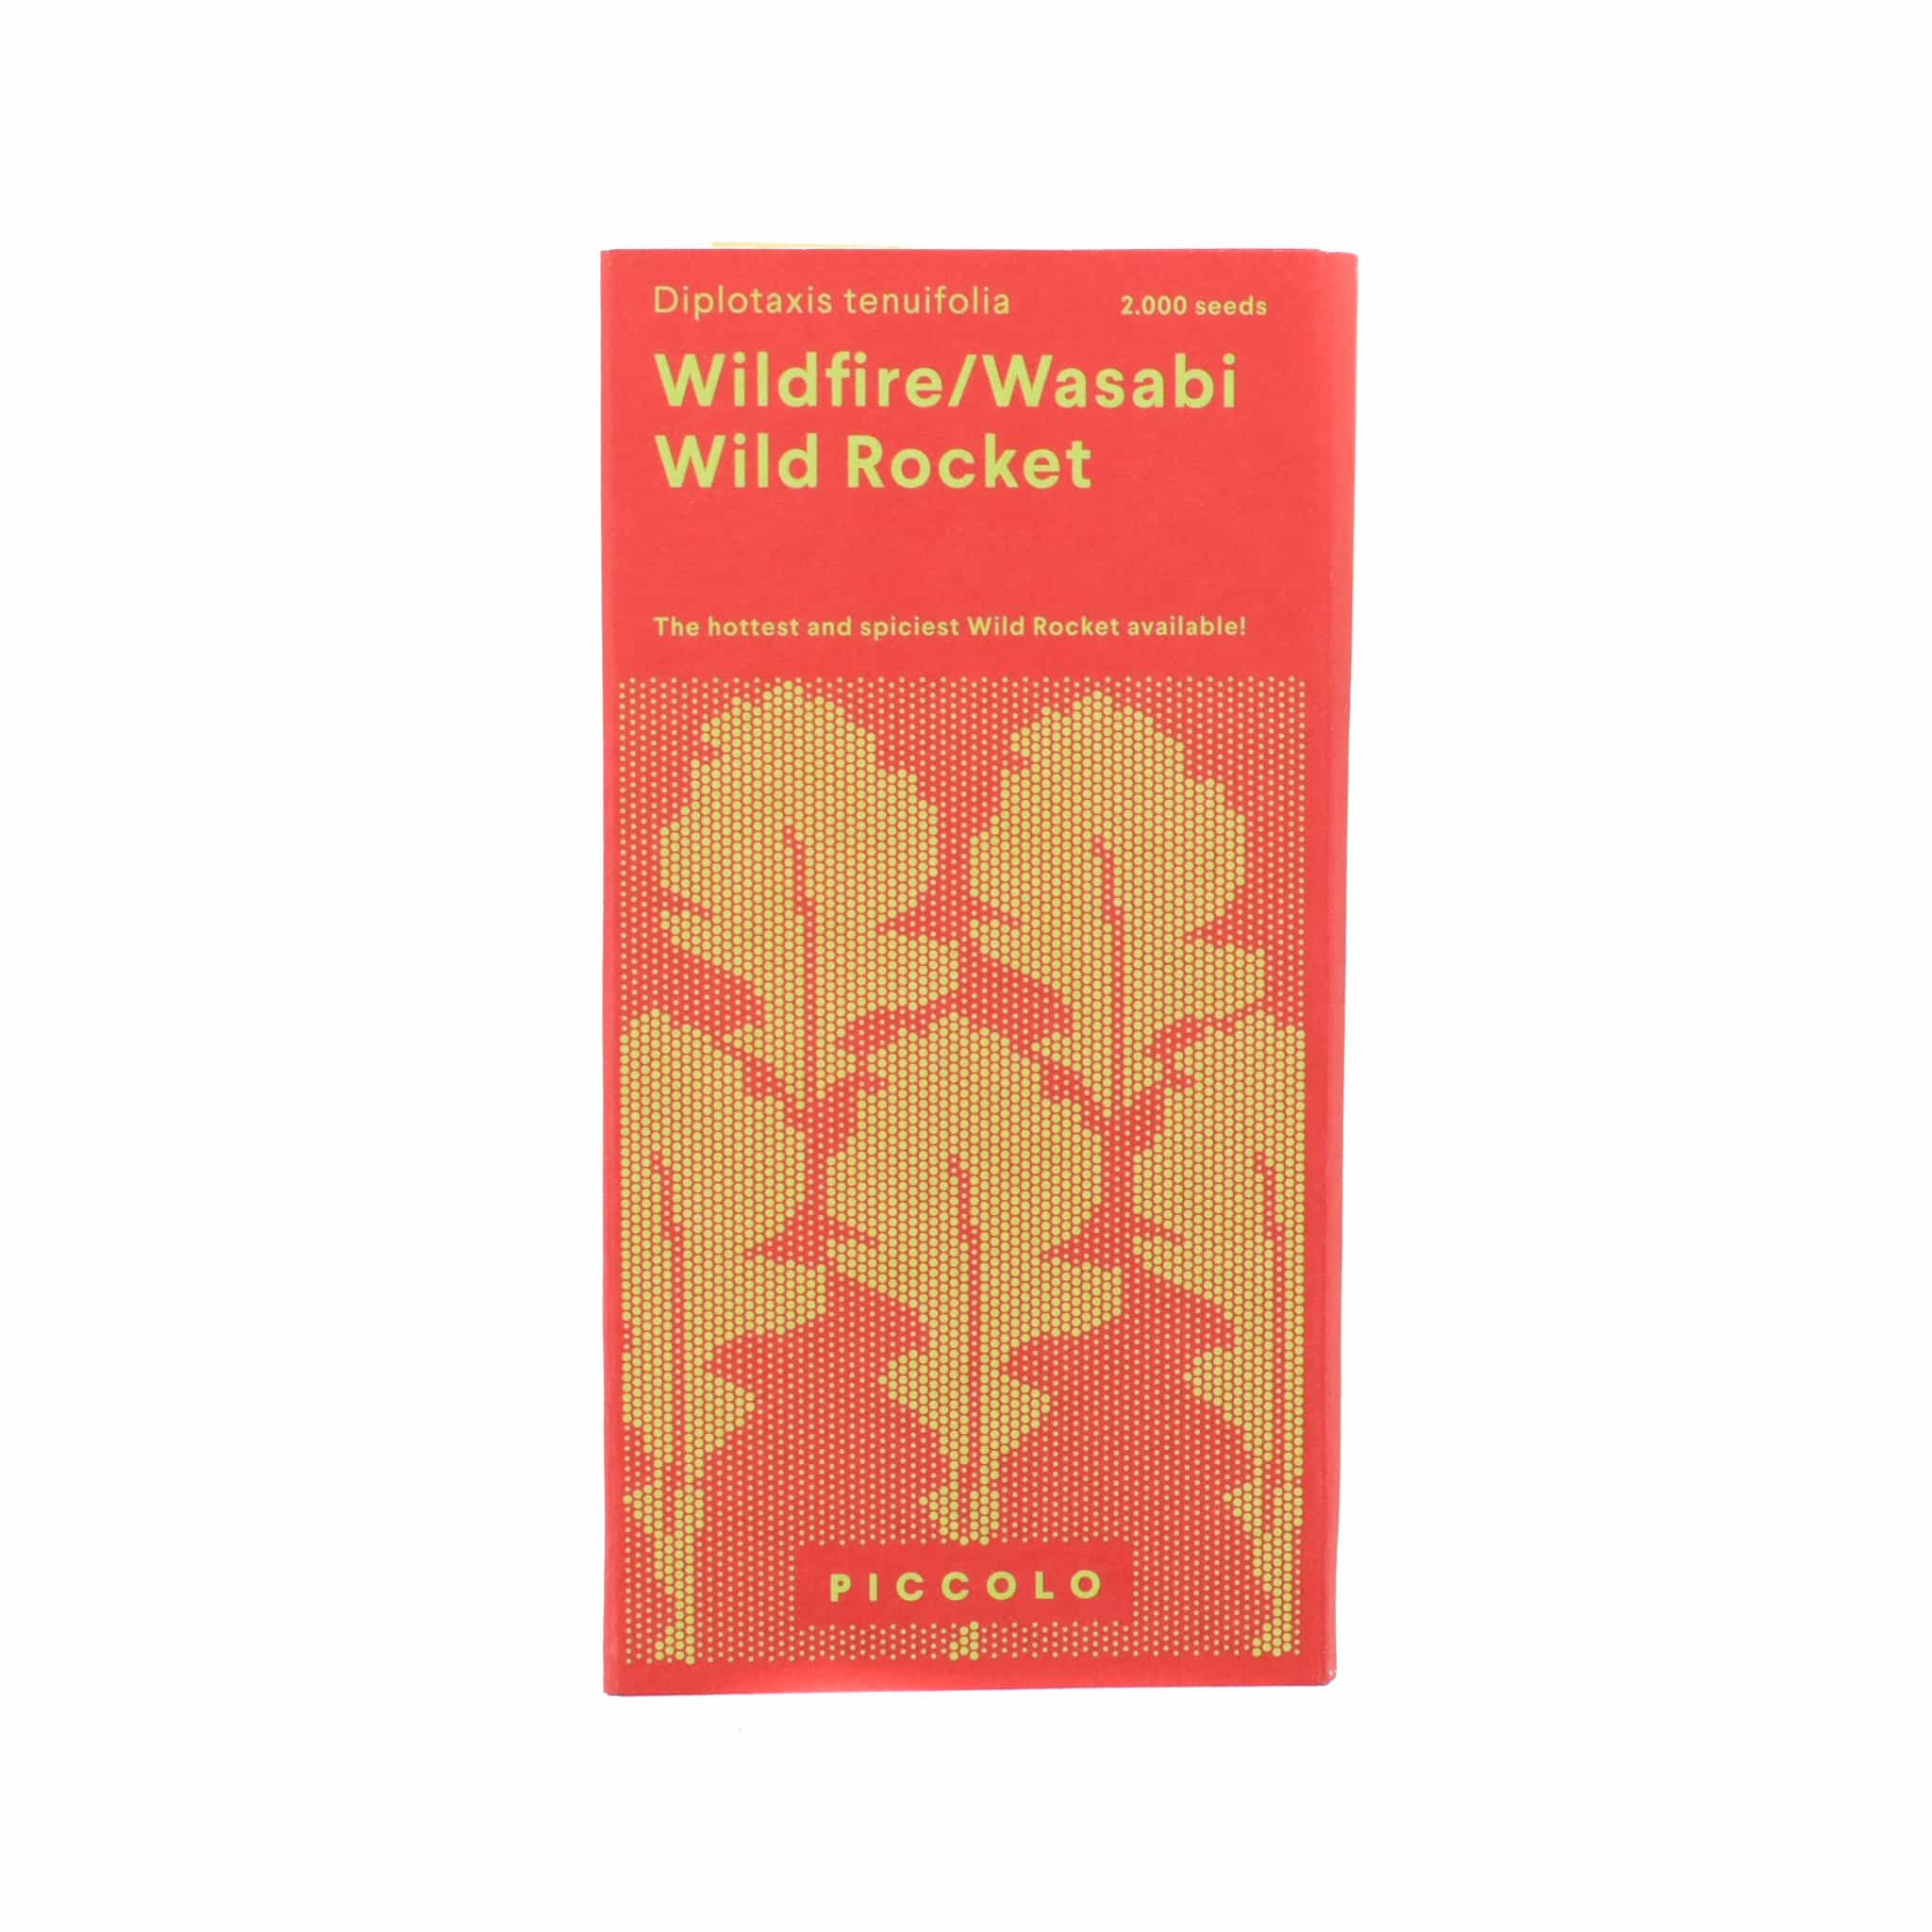 Piccolo Wildfire Wasabi Rocket Seeds